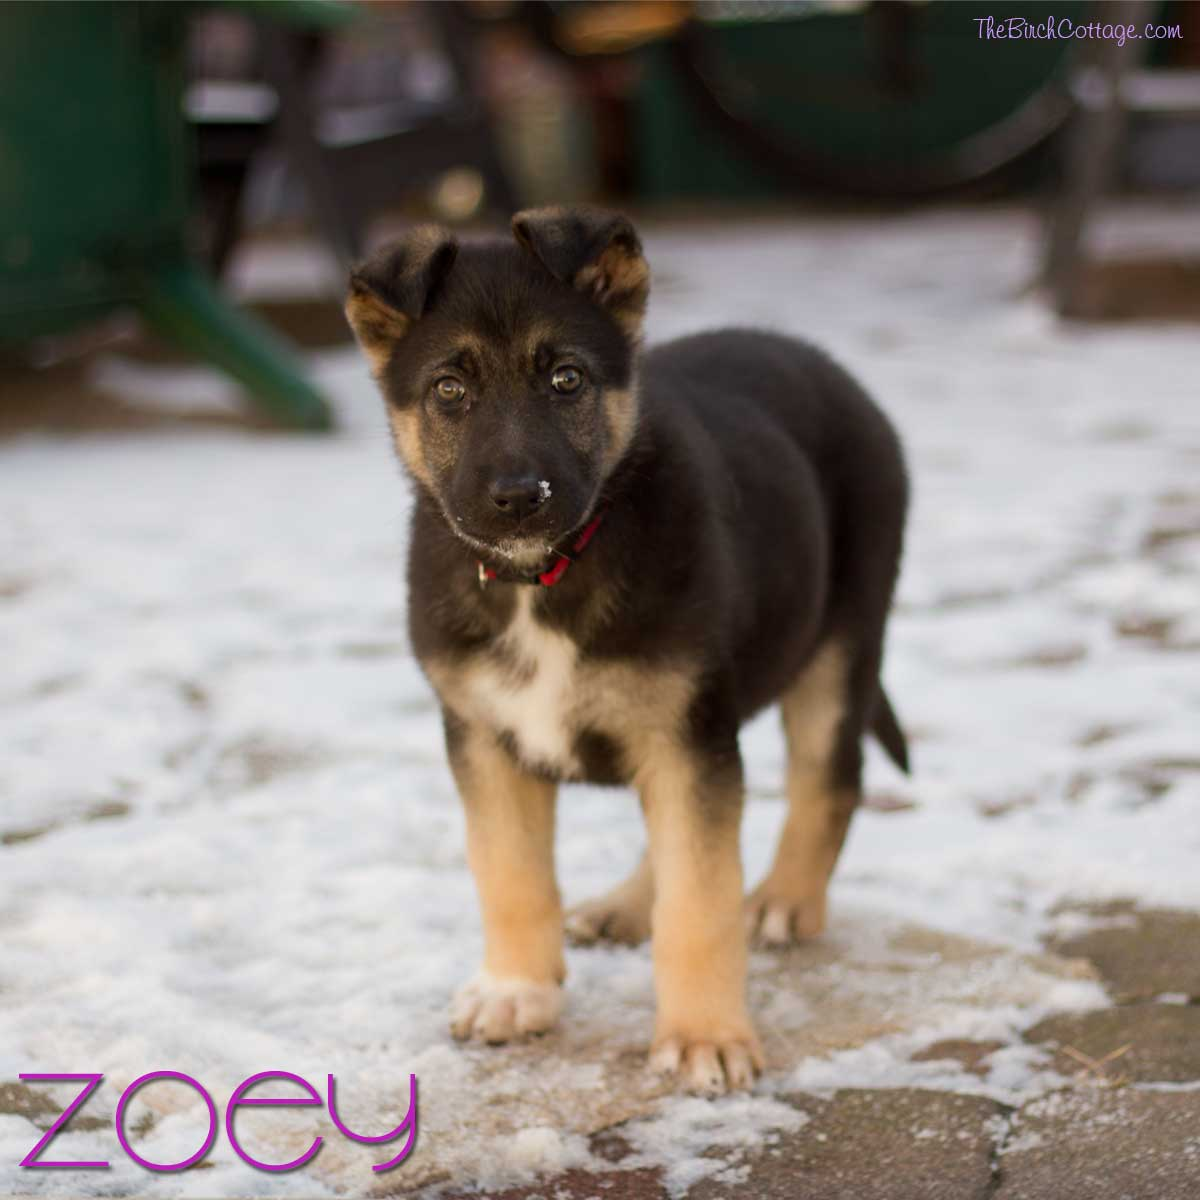 Meet the newest member of our family - Zoey, a German Shepherd puppy!